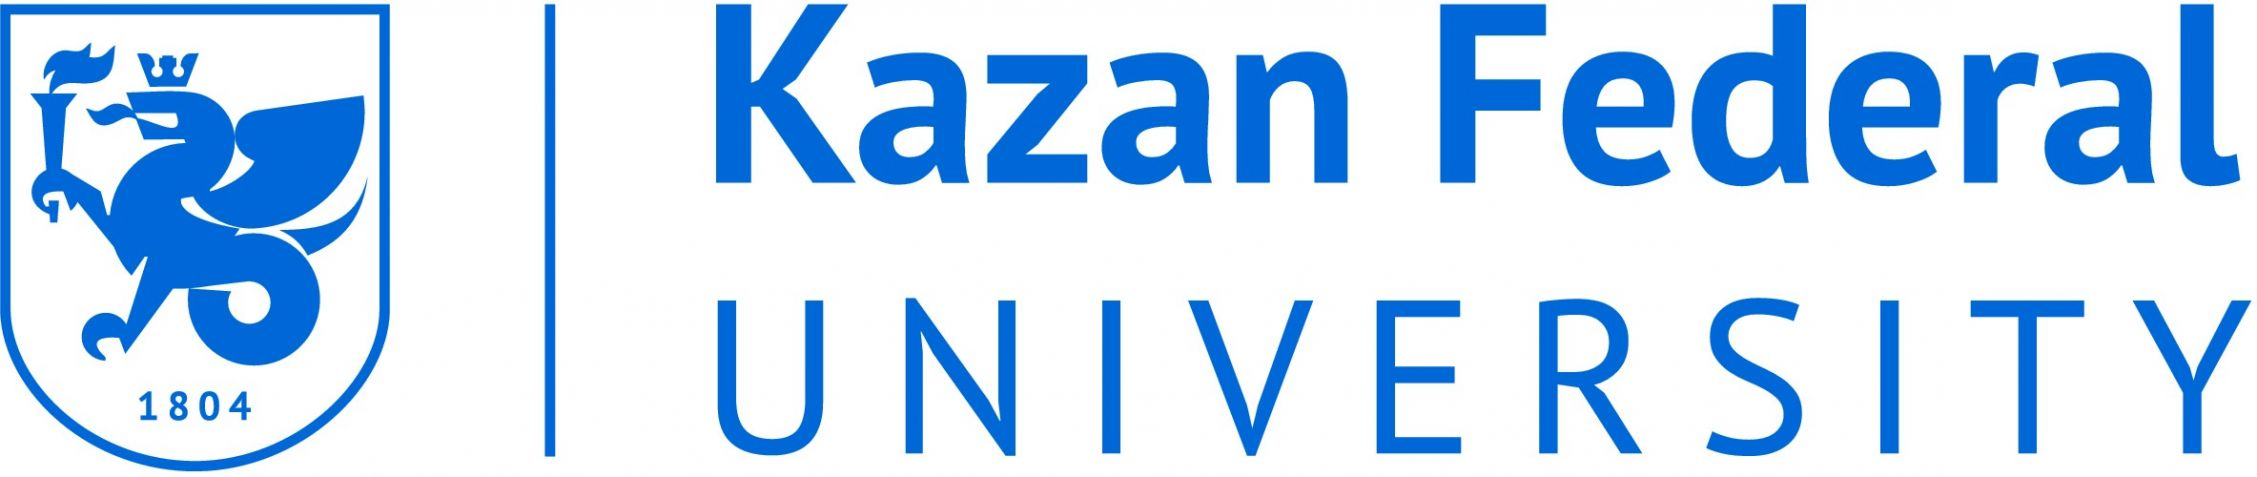 Kazan Federal University Logo